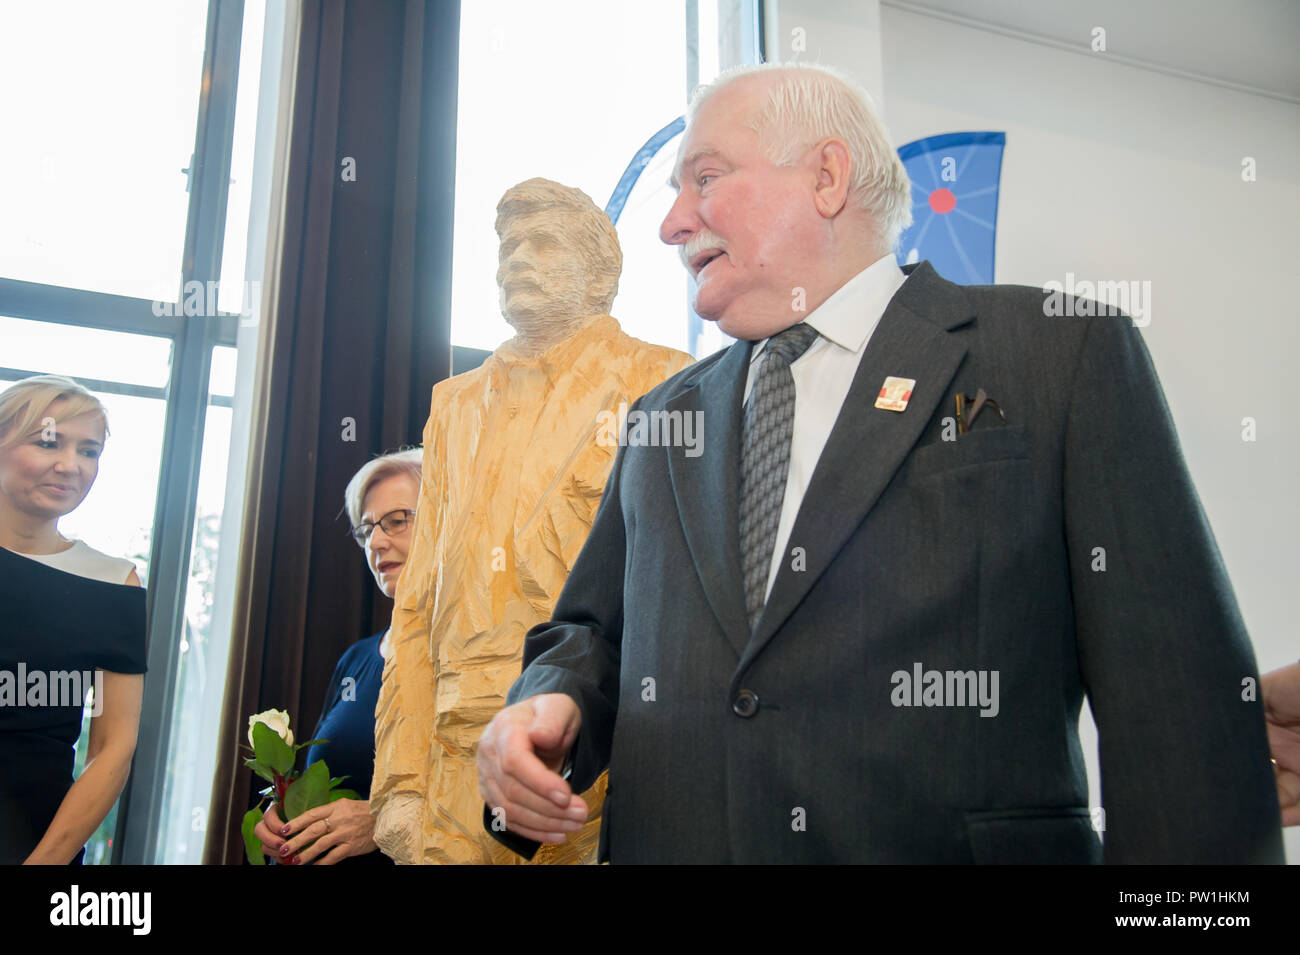 Lech Walesa during the celebration of his 75th birthsday in Gdansk, Poland. September 29th 2018 © Wojciech Strozyk / Alamy Stock Photo - Stock Image